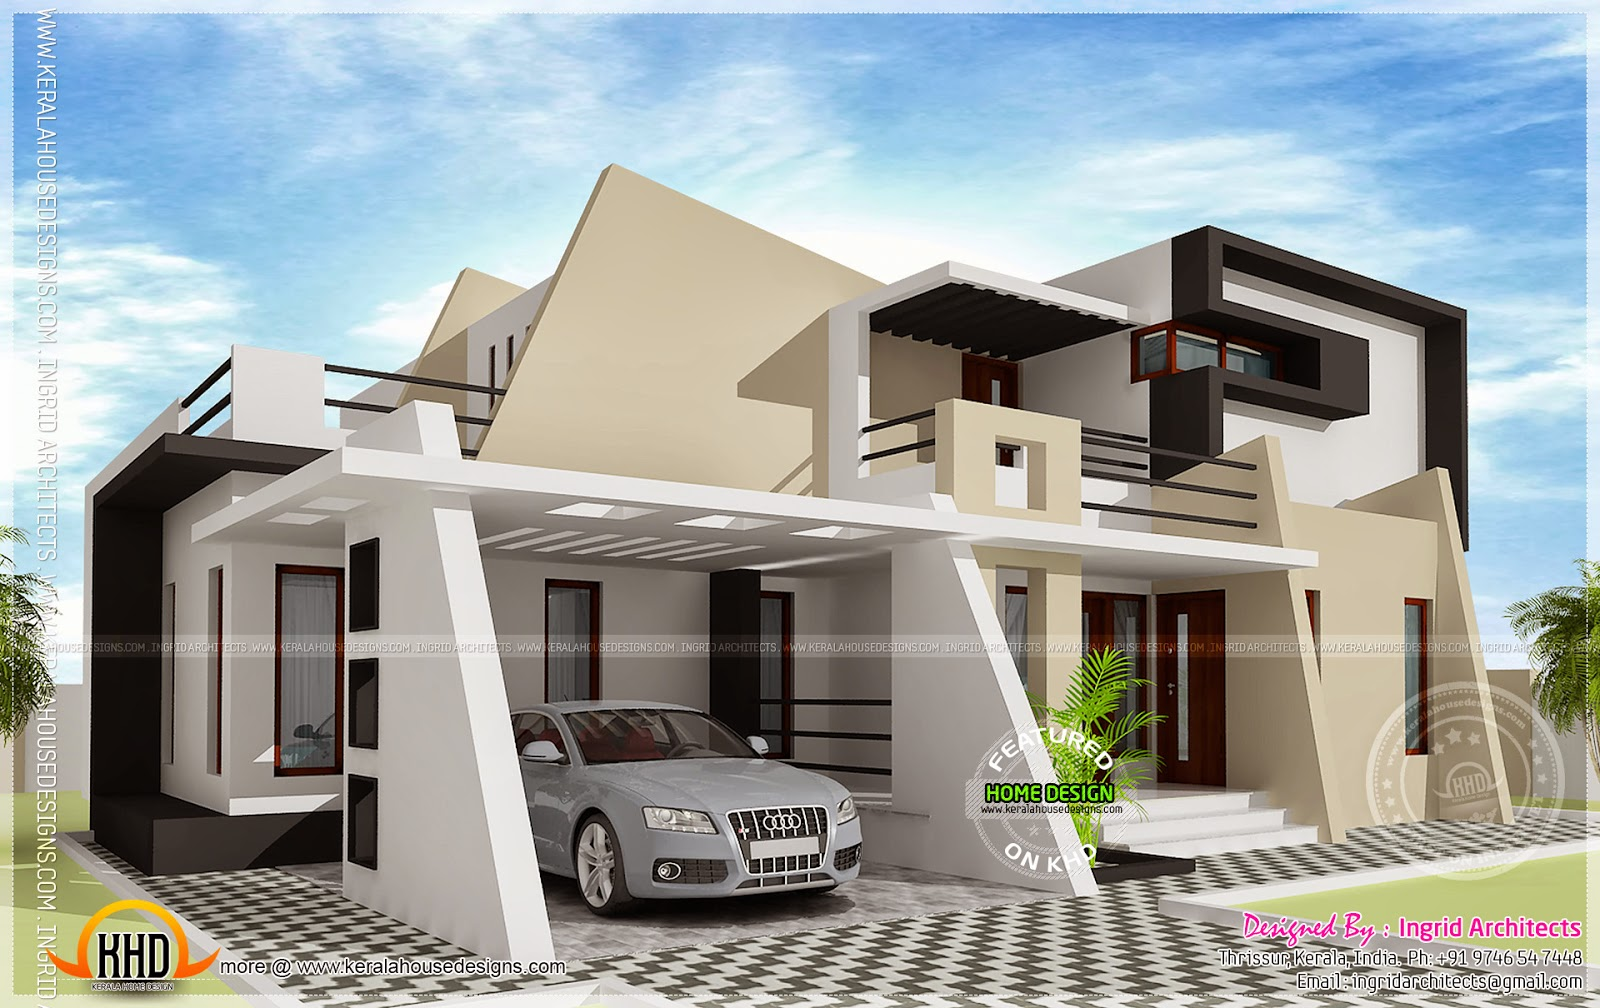 March 2014 kerala home design and floor plans for House plan for 2000 sq ft in india